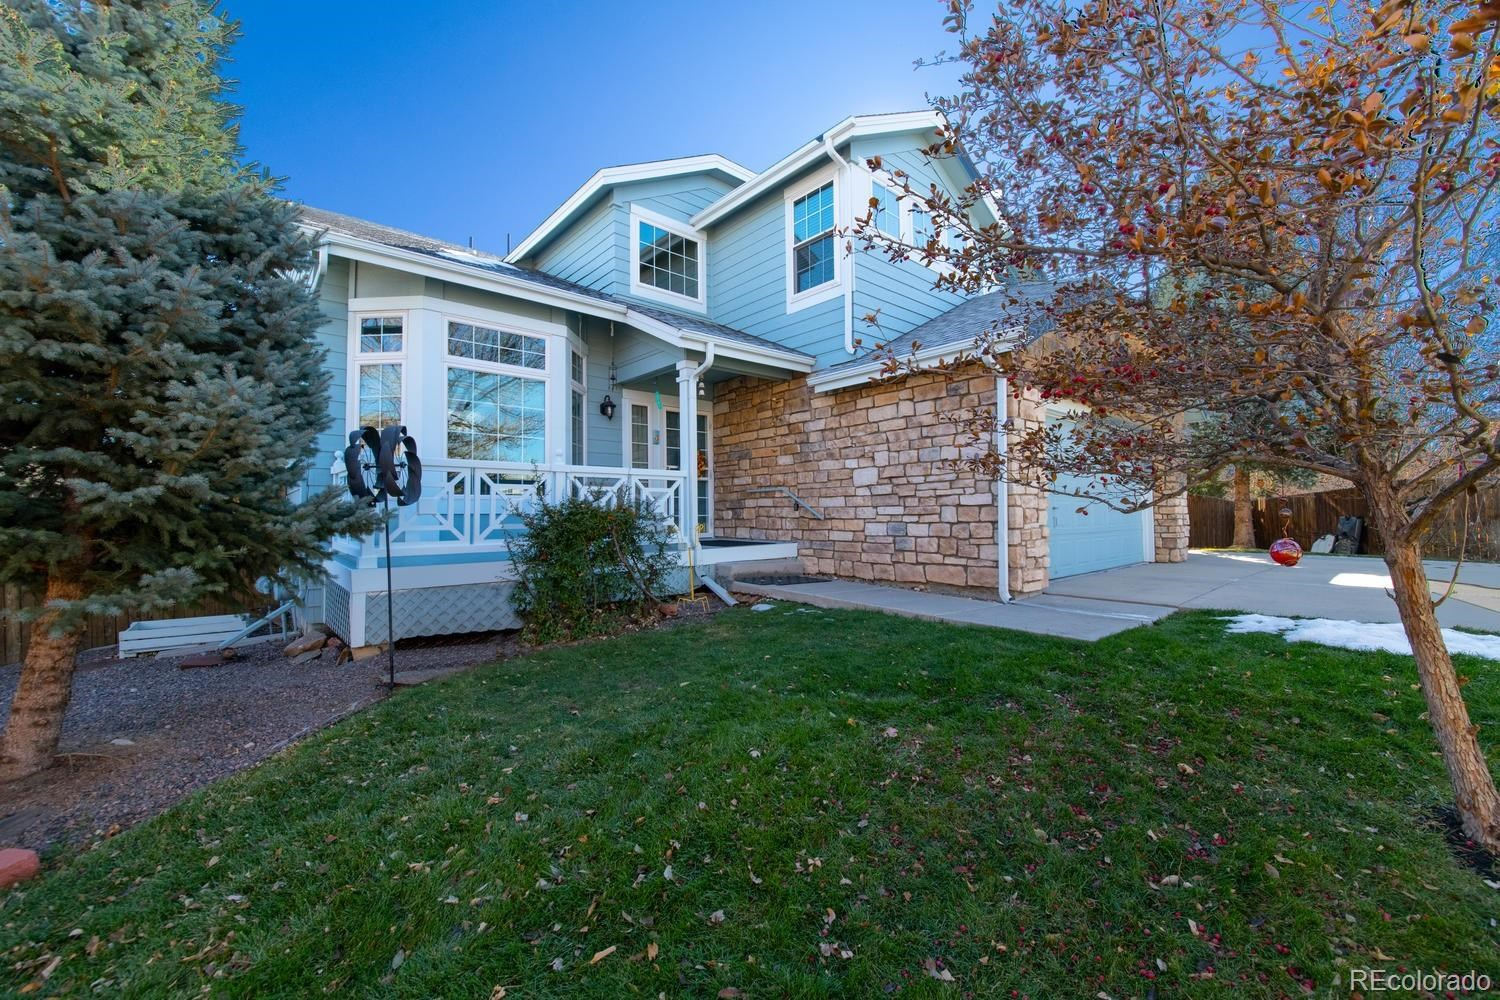 MLS# 8680648 - 2 - 8513 W 94th Avenue, Westminster, CO 80021